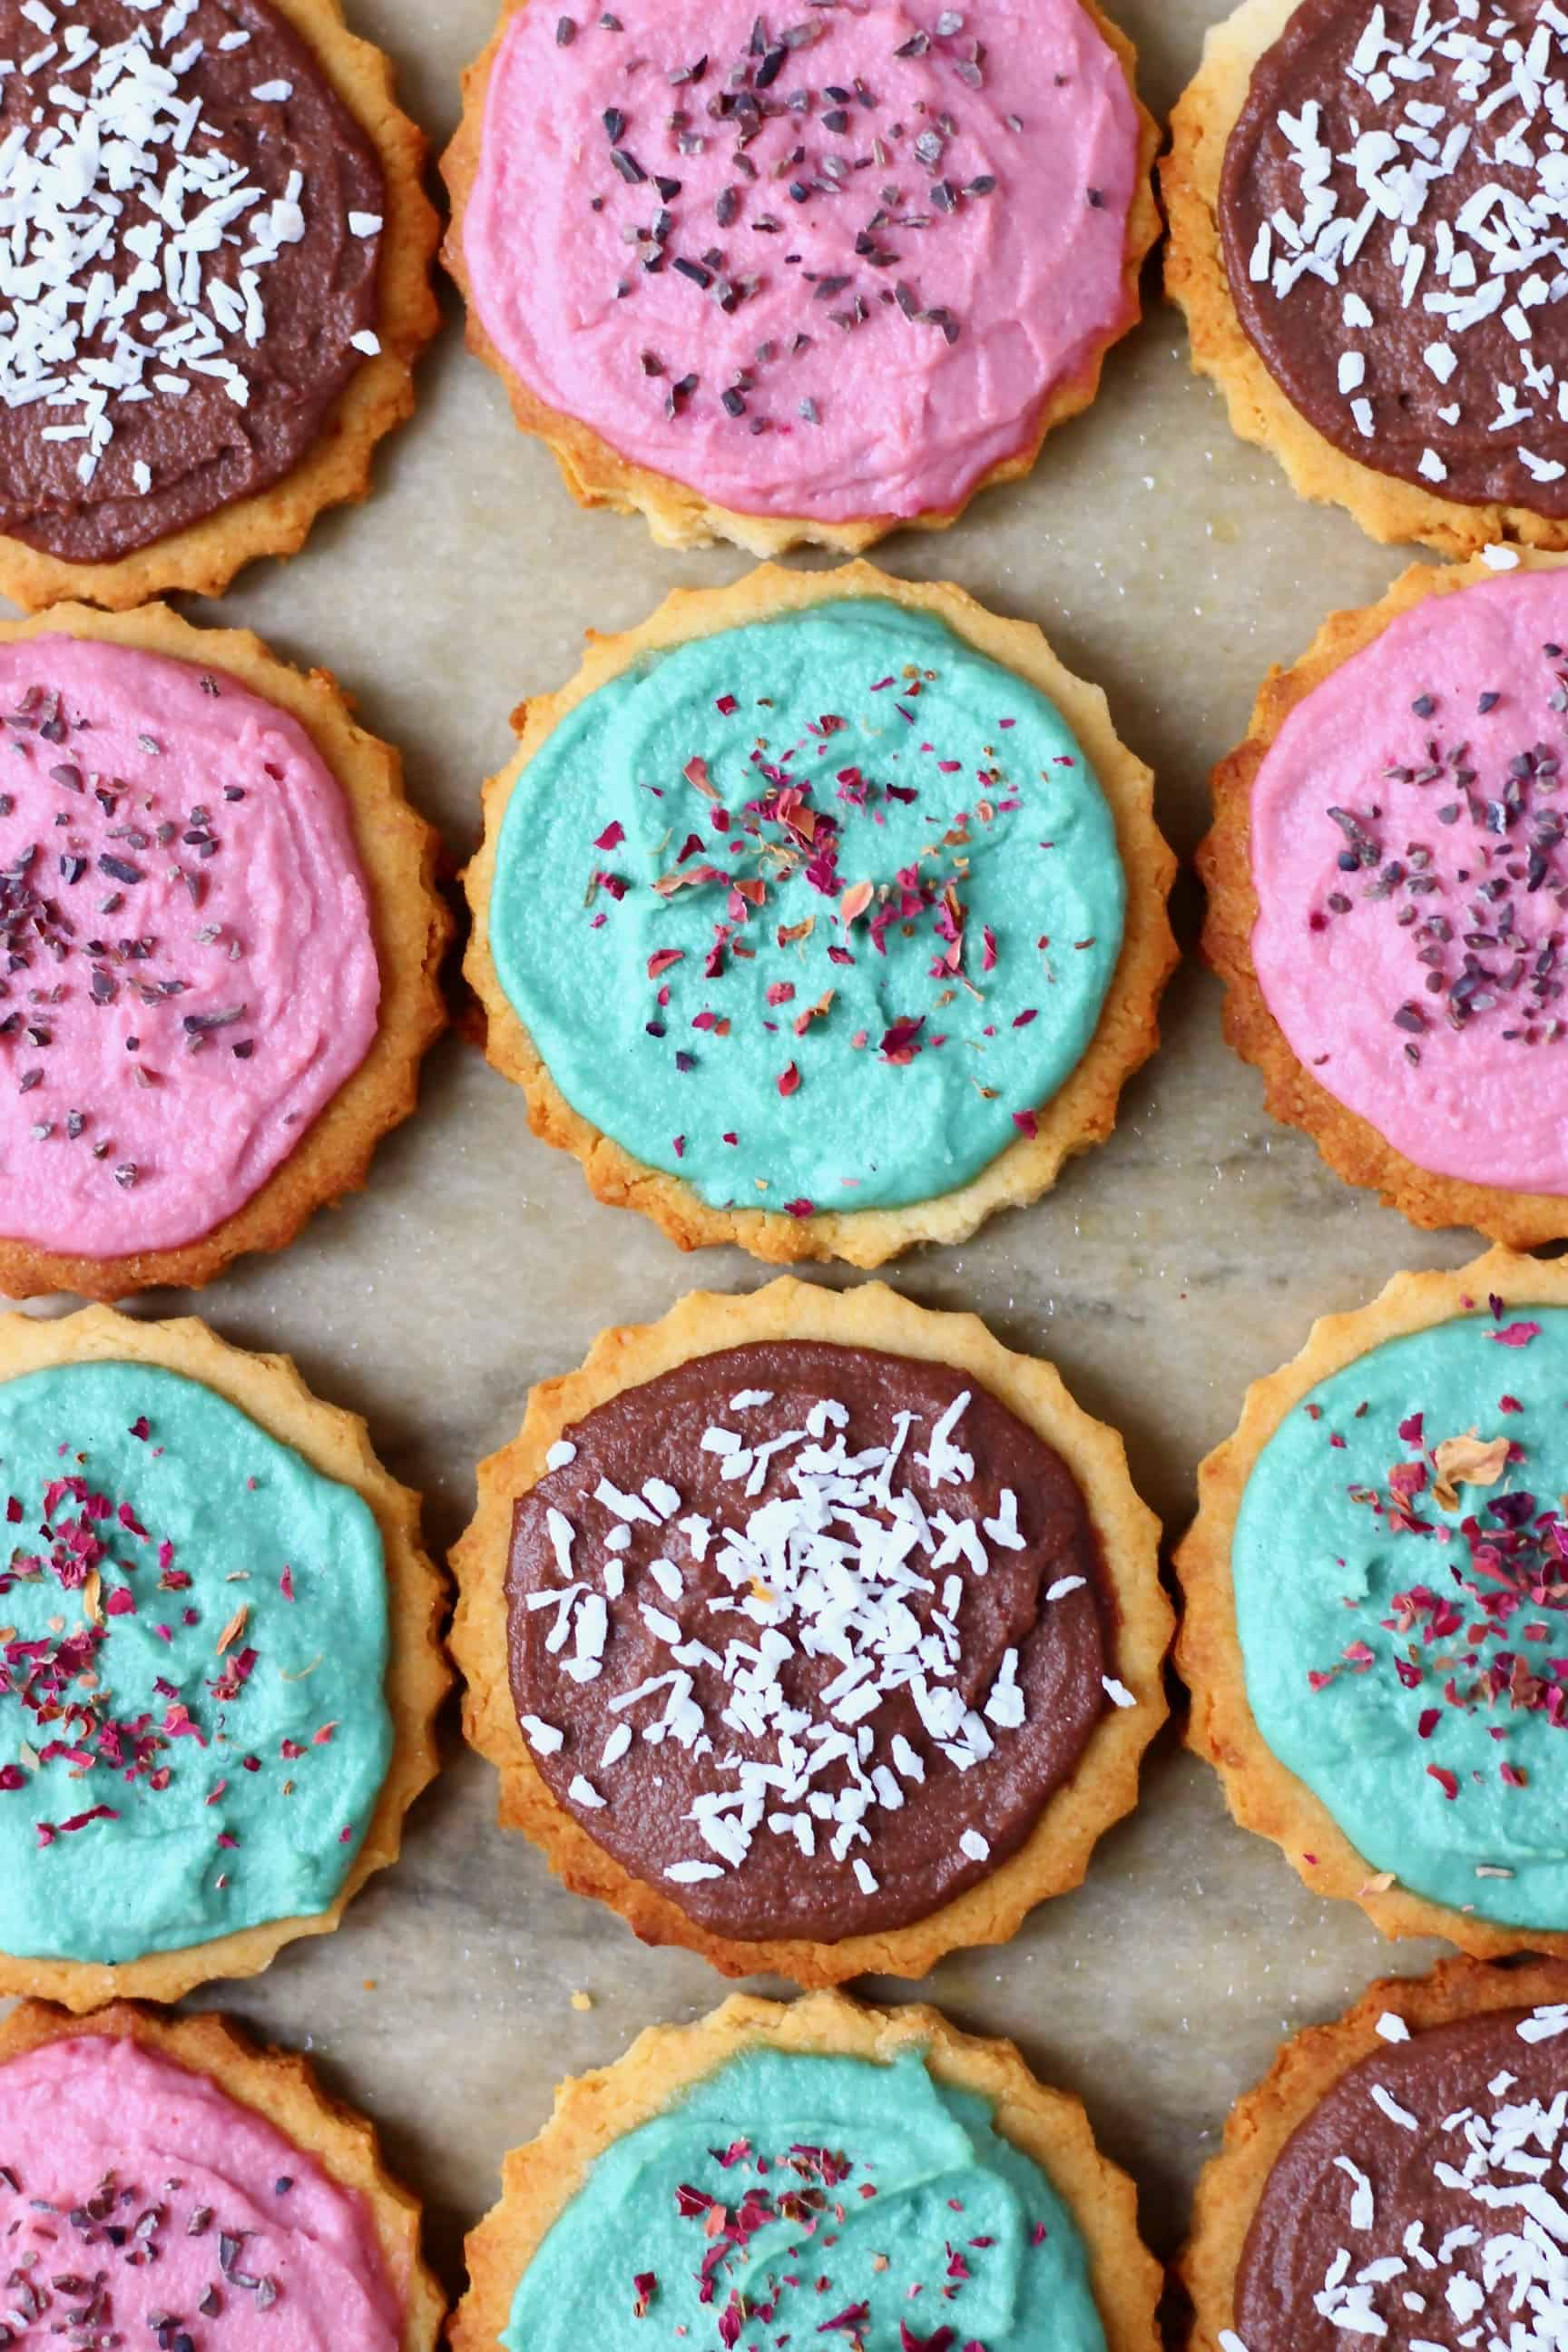 Twelve sugar cookies topped with different coloured frosting and sprinkles on a sheet of brown baking paper